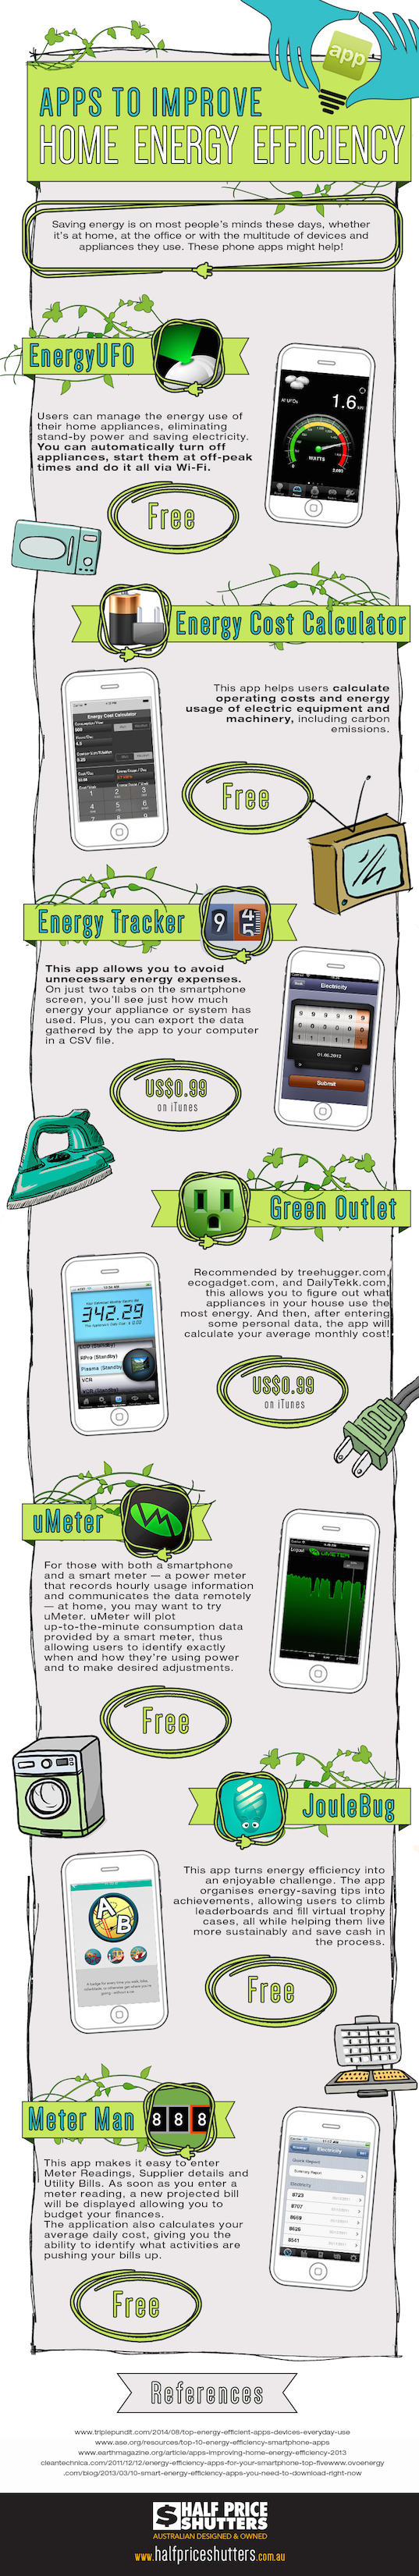 smartphone apps, Half Price Shutters, infographic, energy efficiency, home energy efficiency, energy efficiency apps,